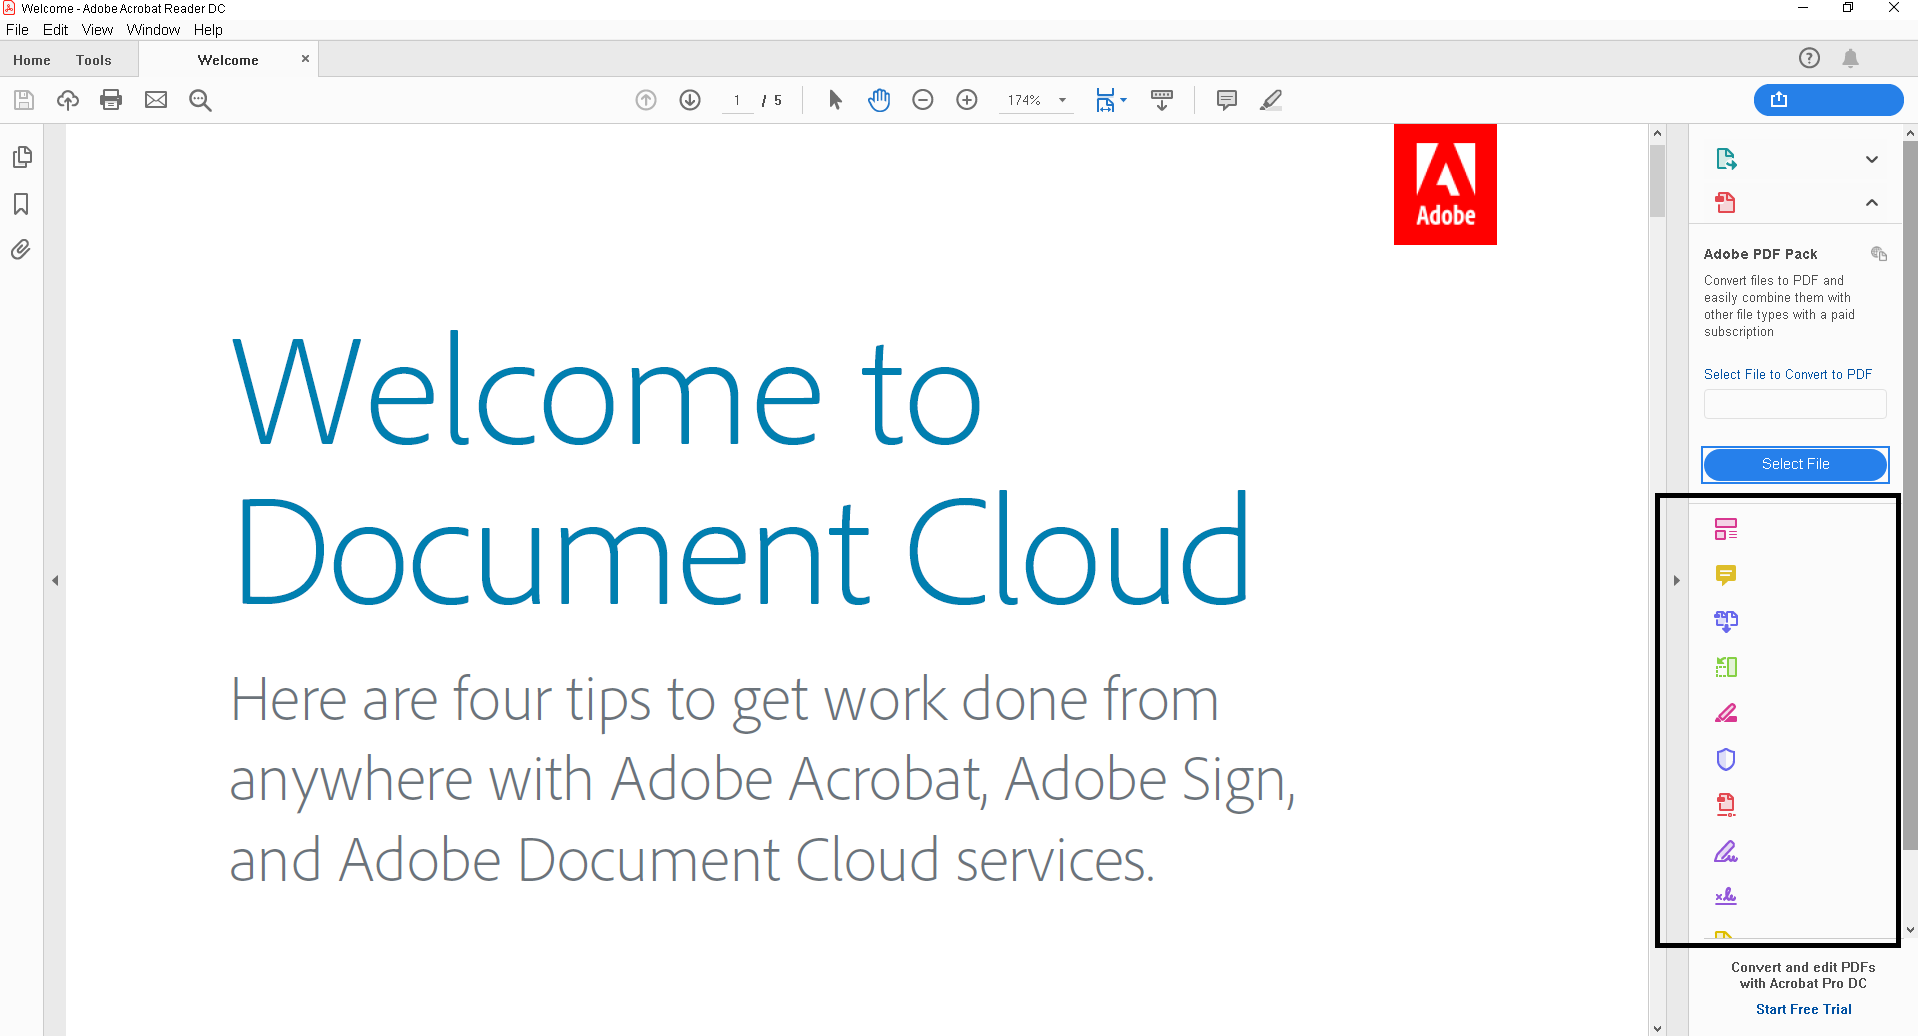 Adobe Acrobat Keyboard Shortcuts for Windows and macOS